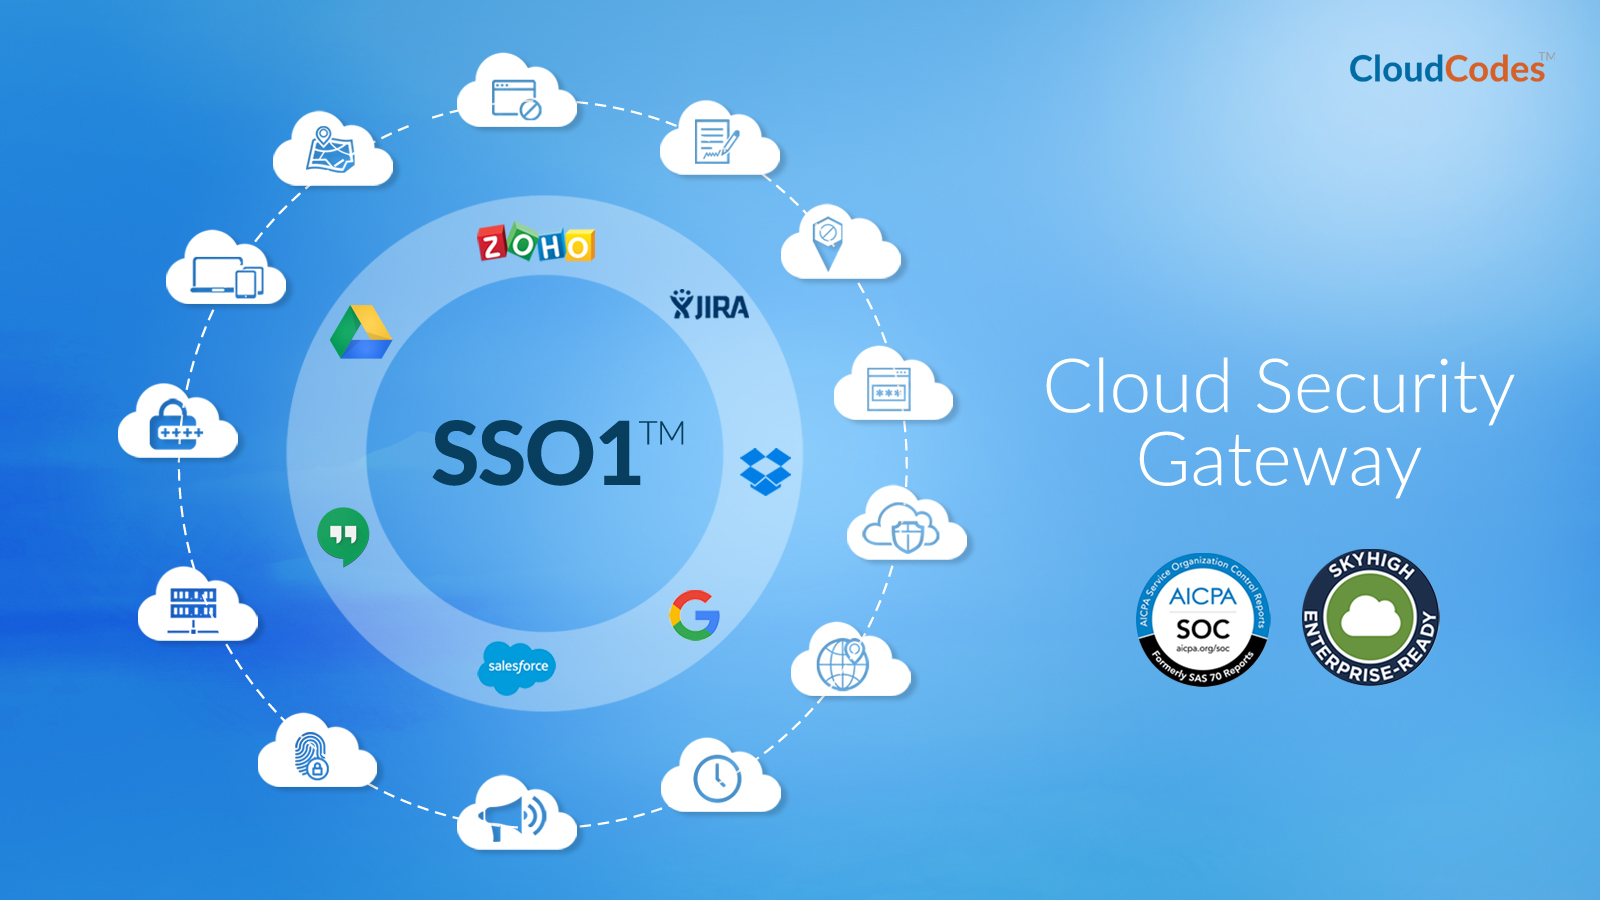 Cloud Security Gateway - SSO1